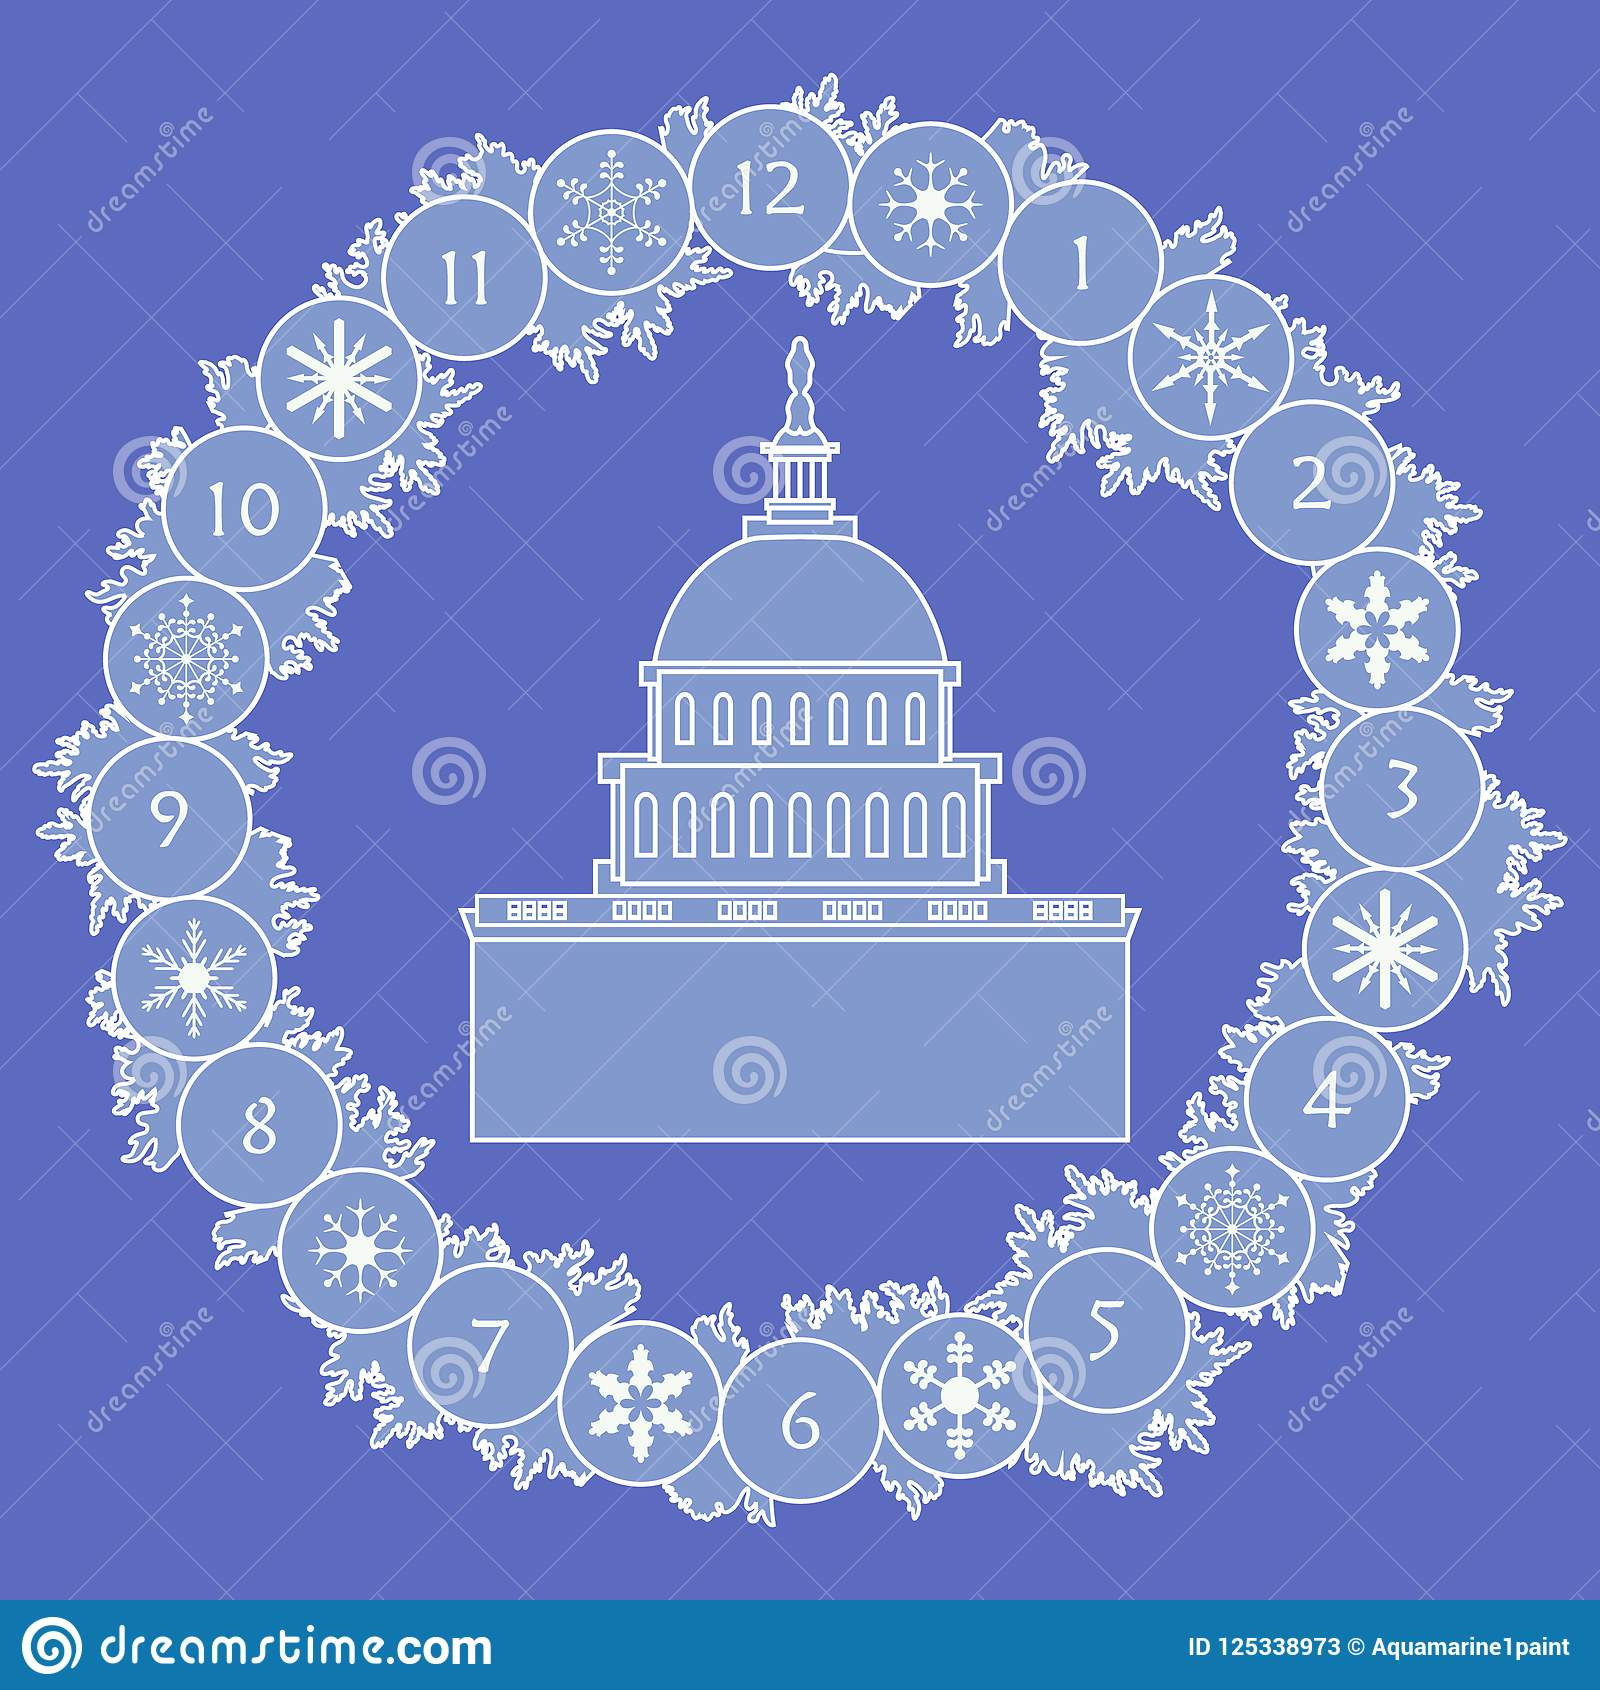 Happy new year 2019 christmas card stock vector illustration of christmas wreath with fir branches snowflakes and famous building in the usa happy new year 2019 christmas card m4hsunfo